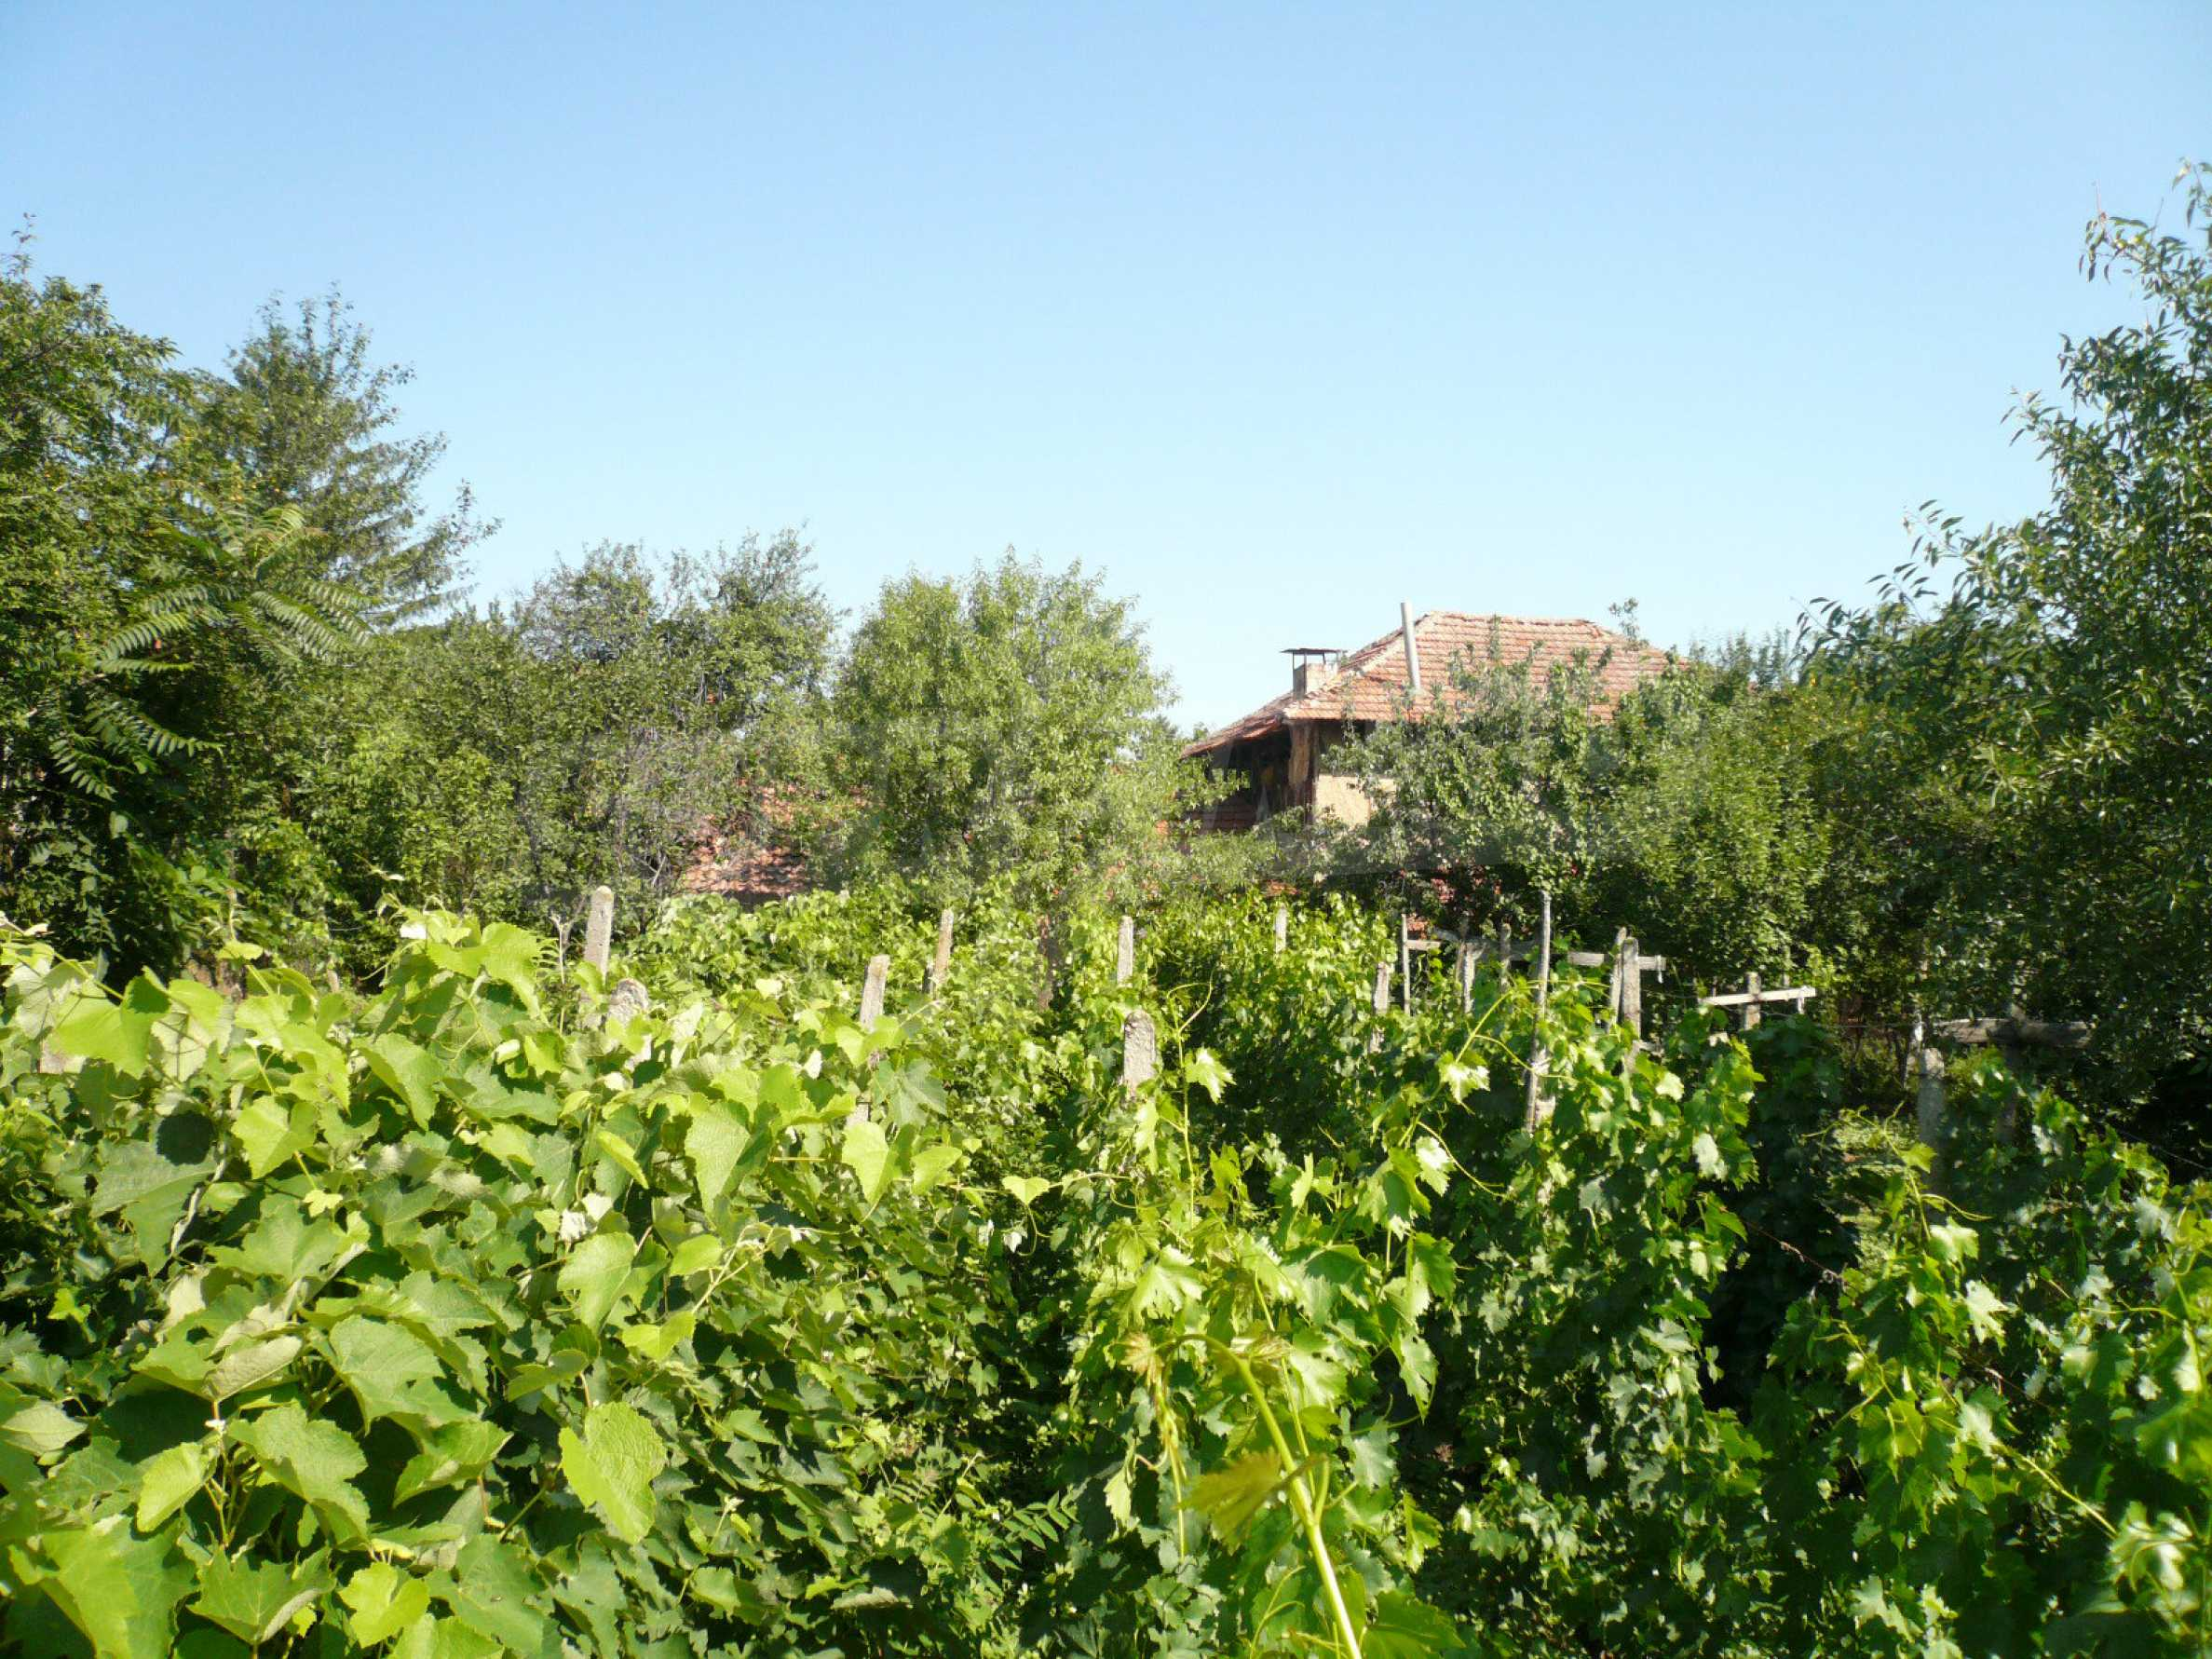 Rural houses with garden 12 km from Vidin 15